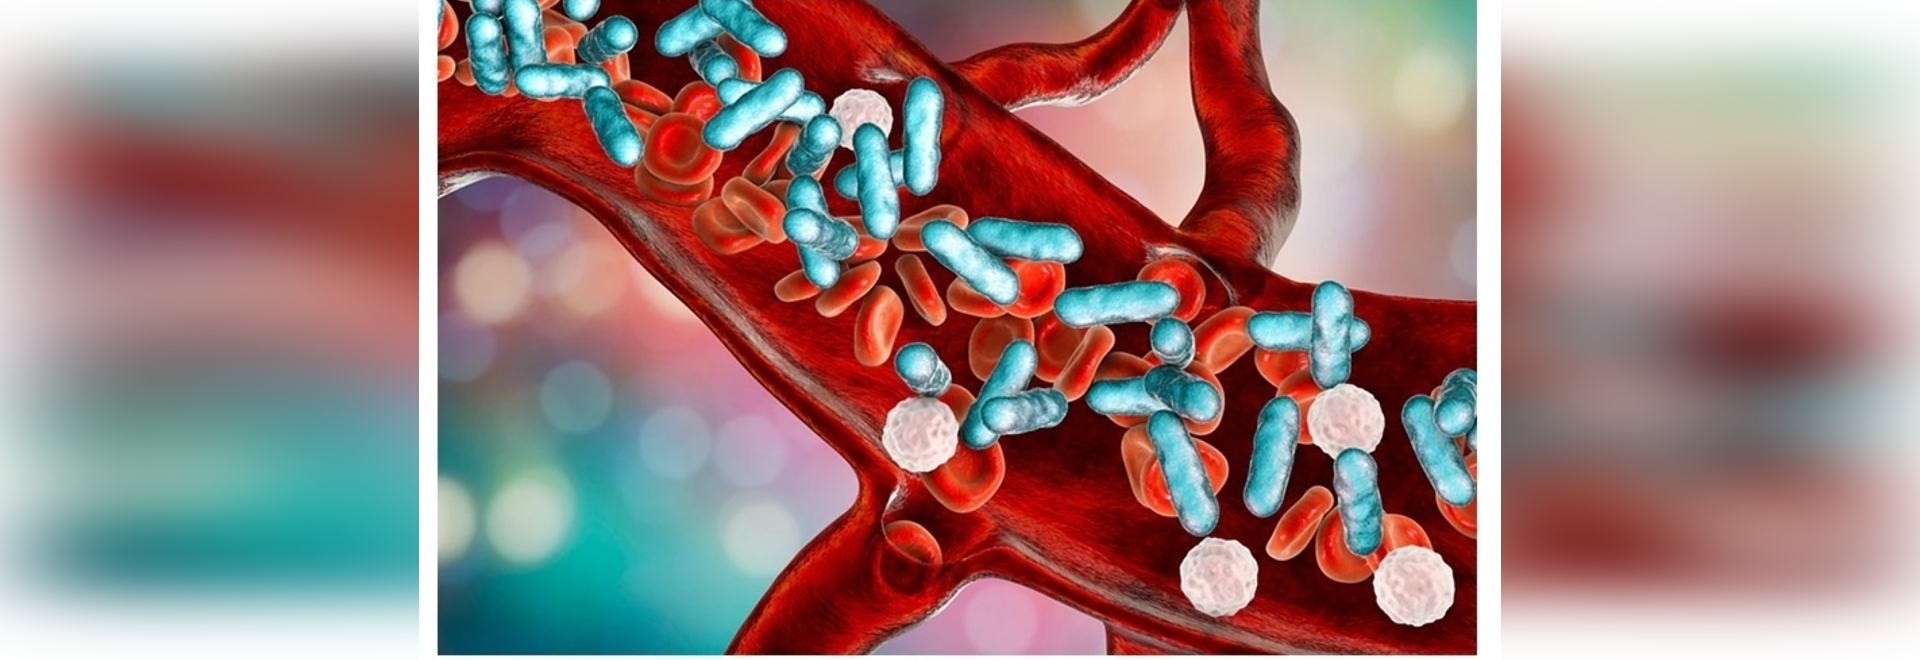 Biomaterial-Based Vaccine Against Bacterial Infection